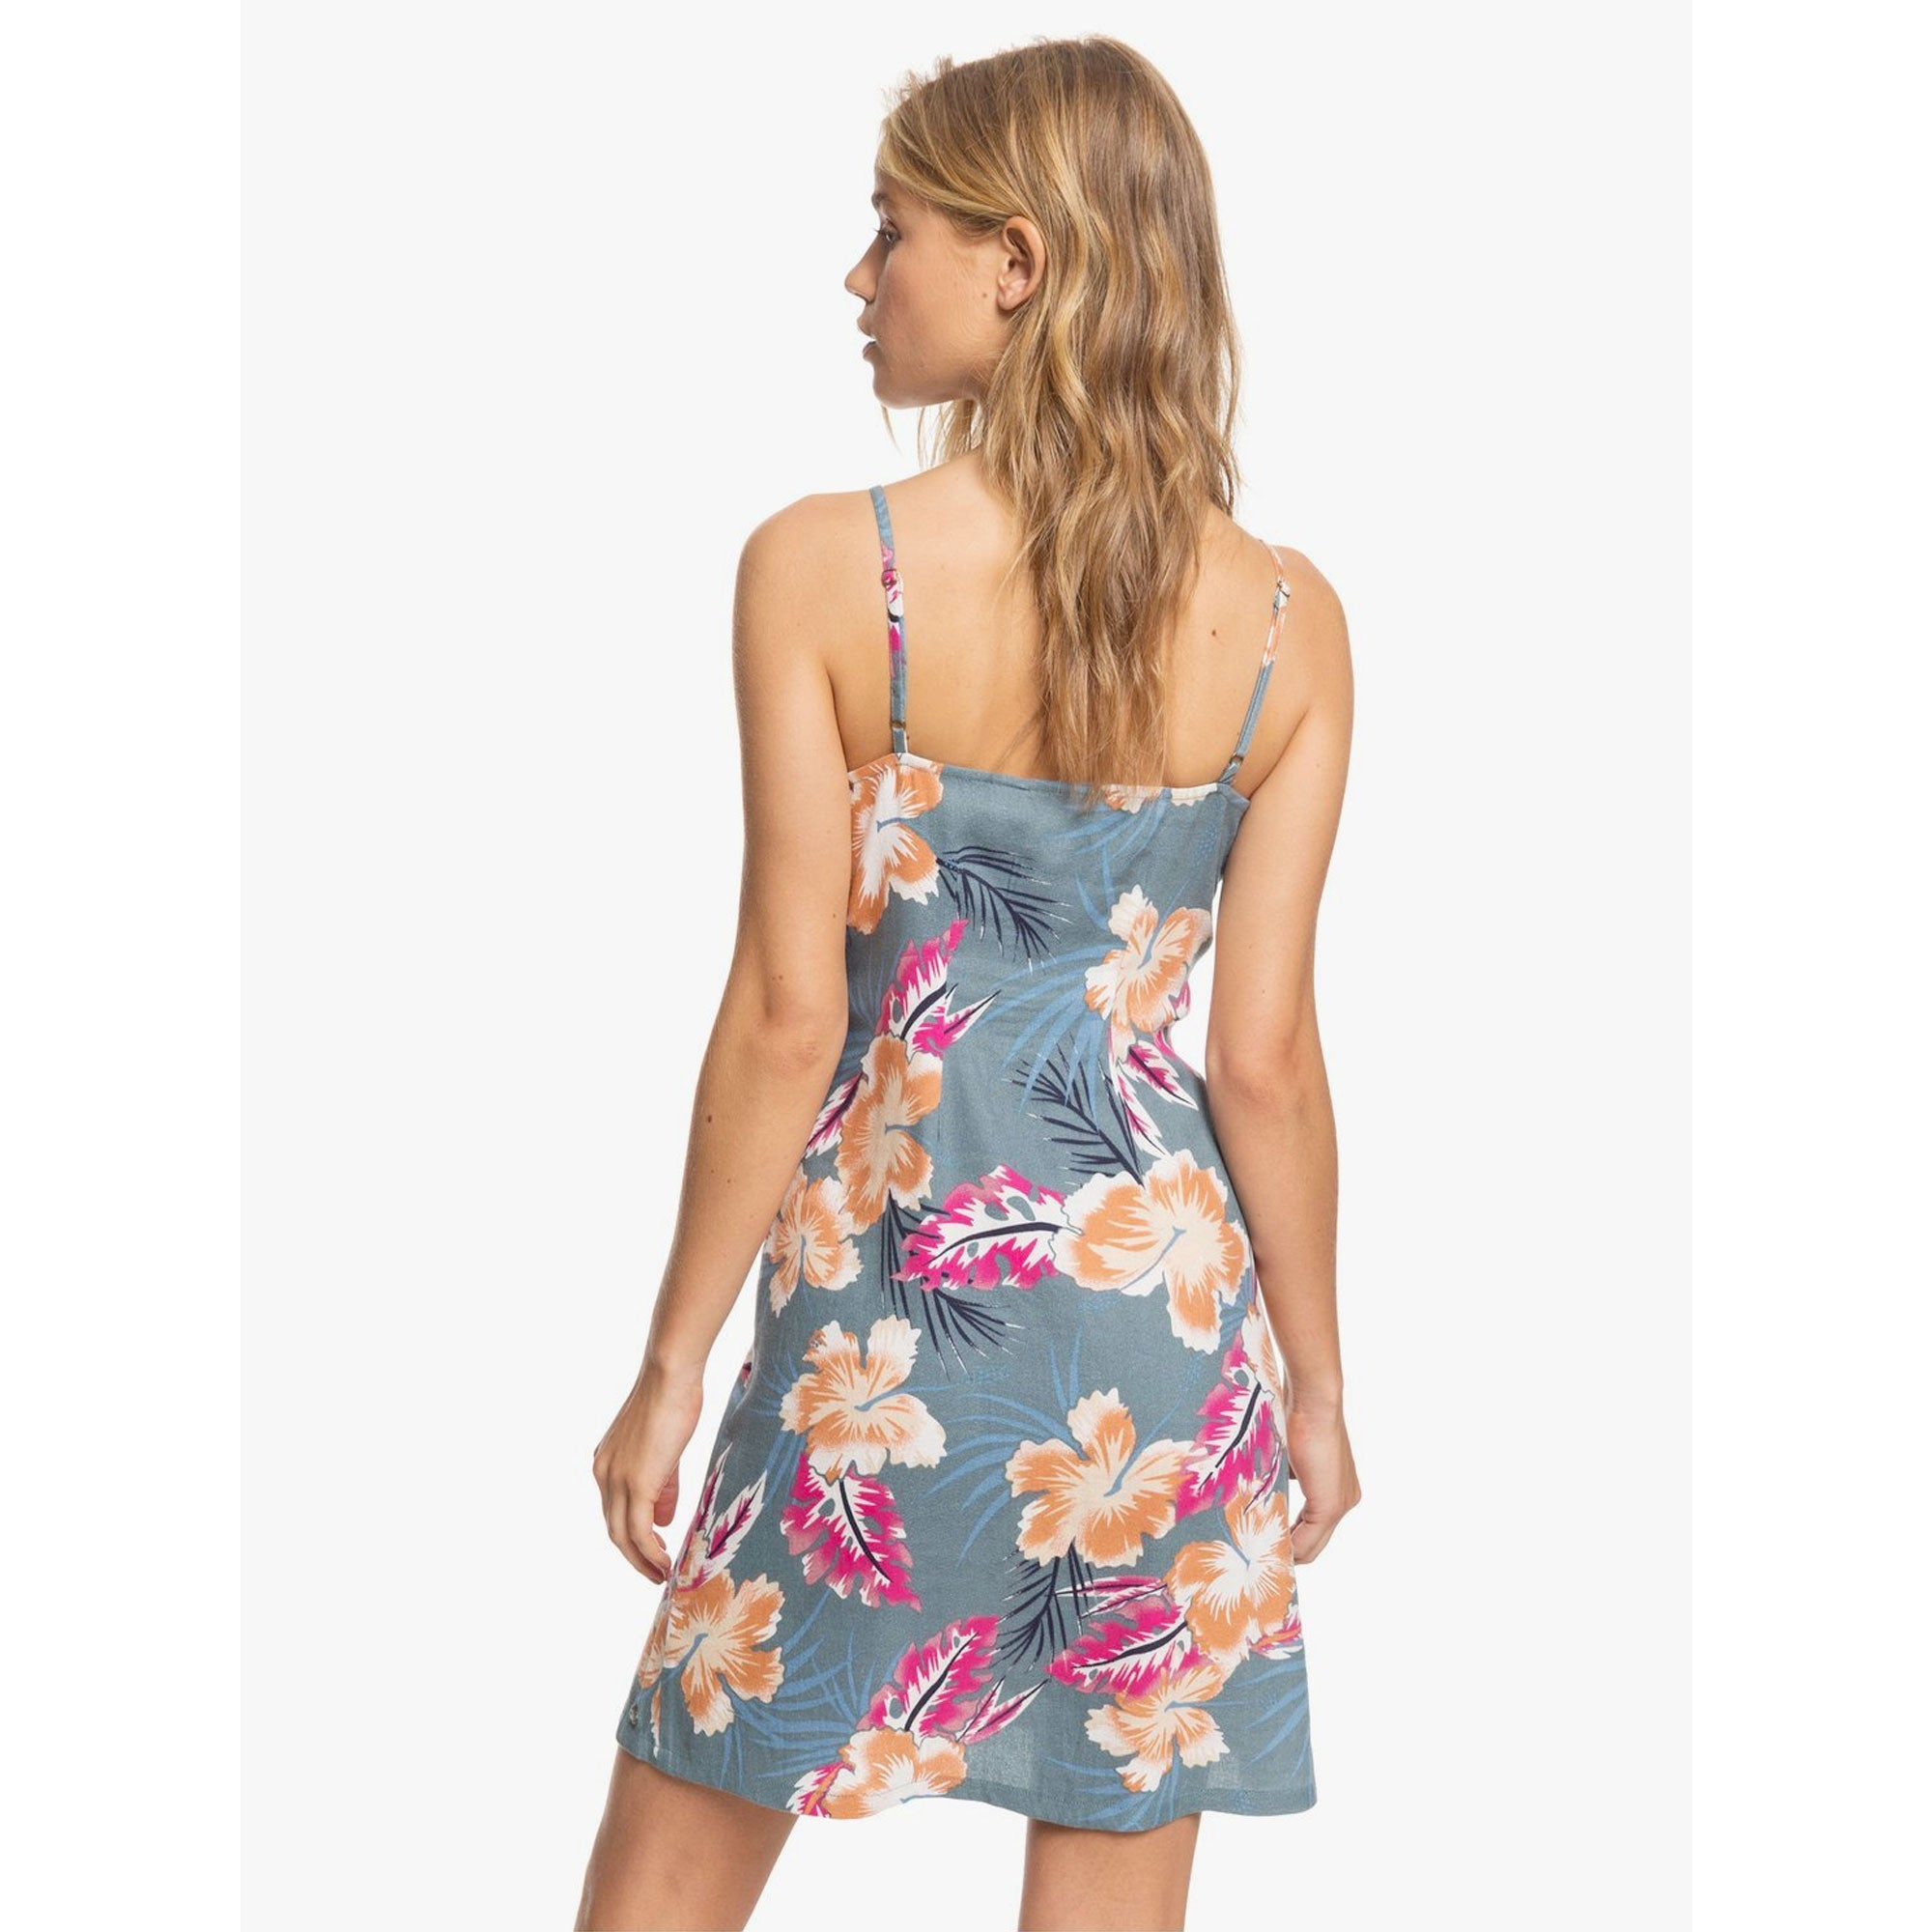 Roxy Sweet About Me Women's Printed Strappy Buttoned Dress